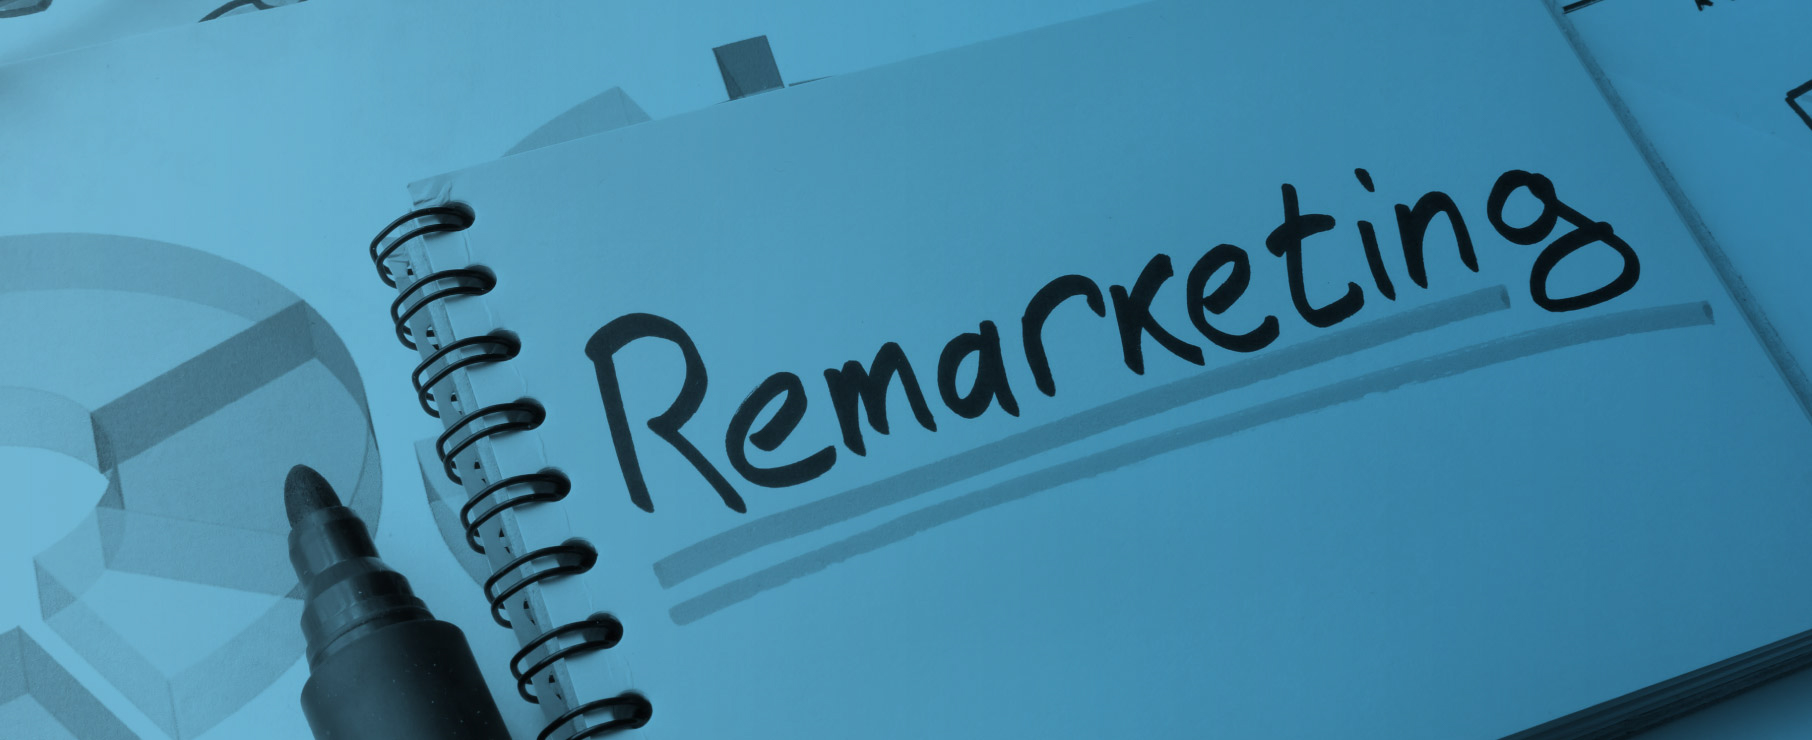 Infinitum Agency remarketing